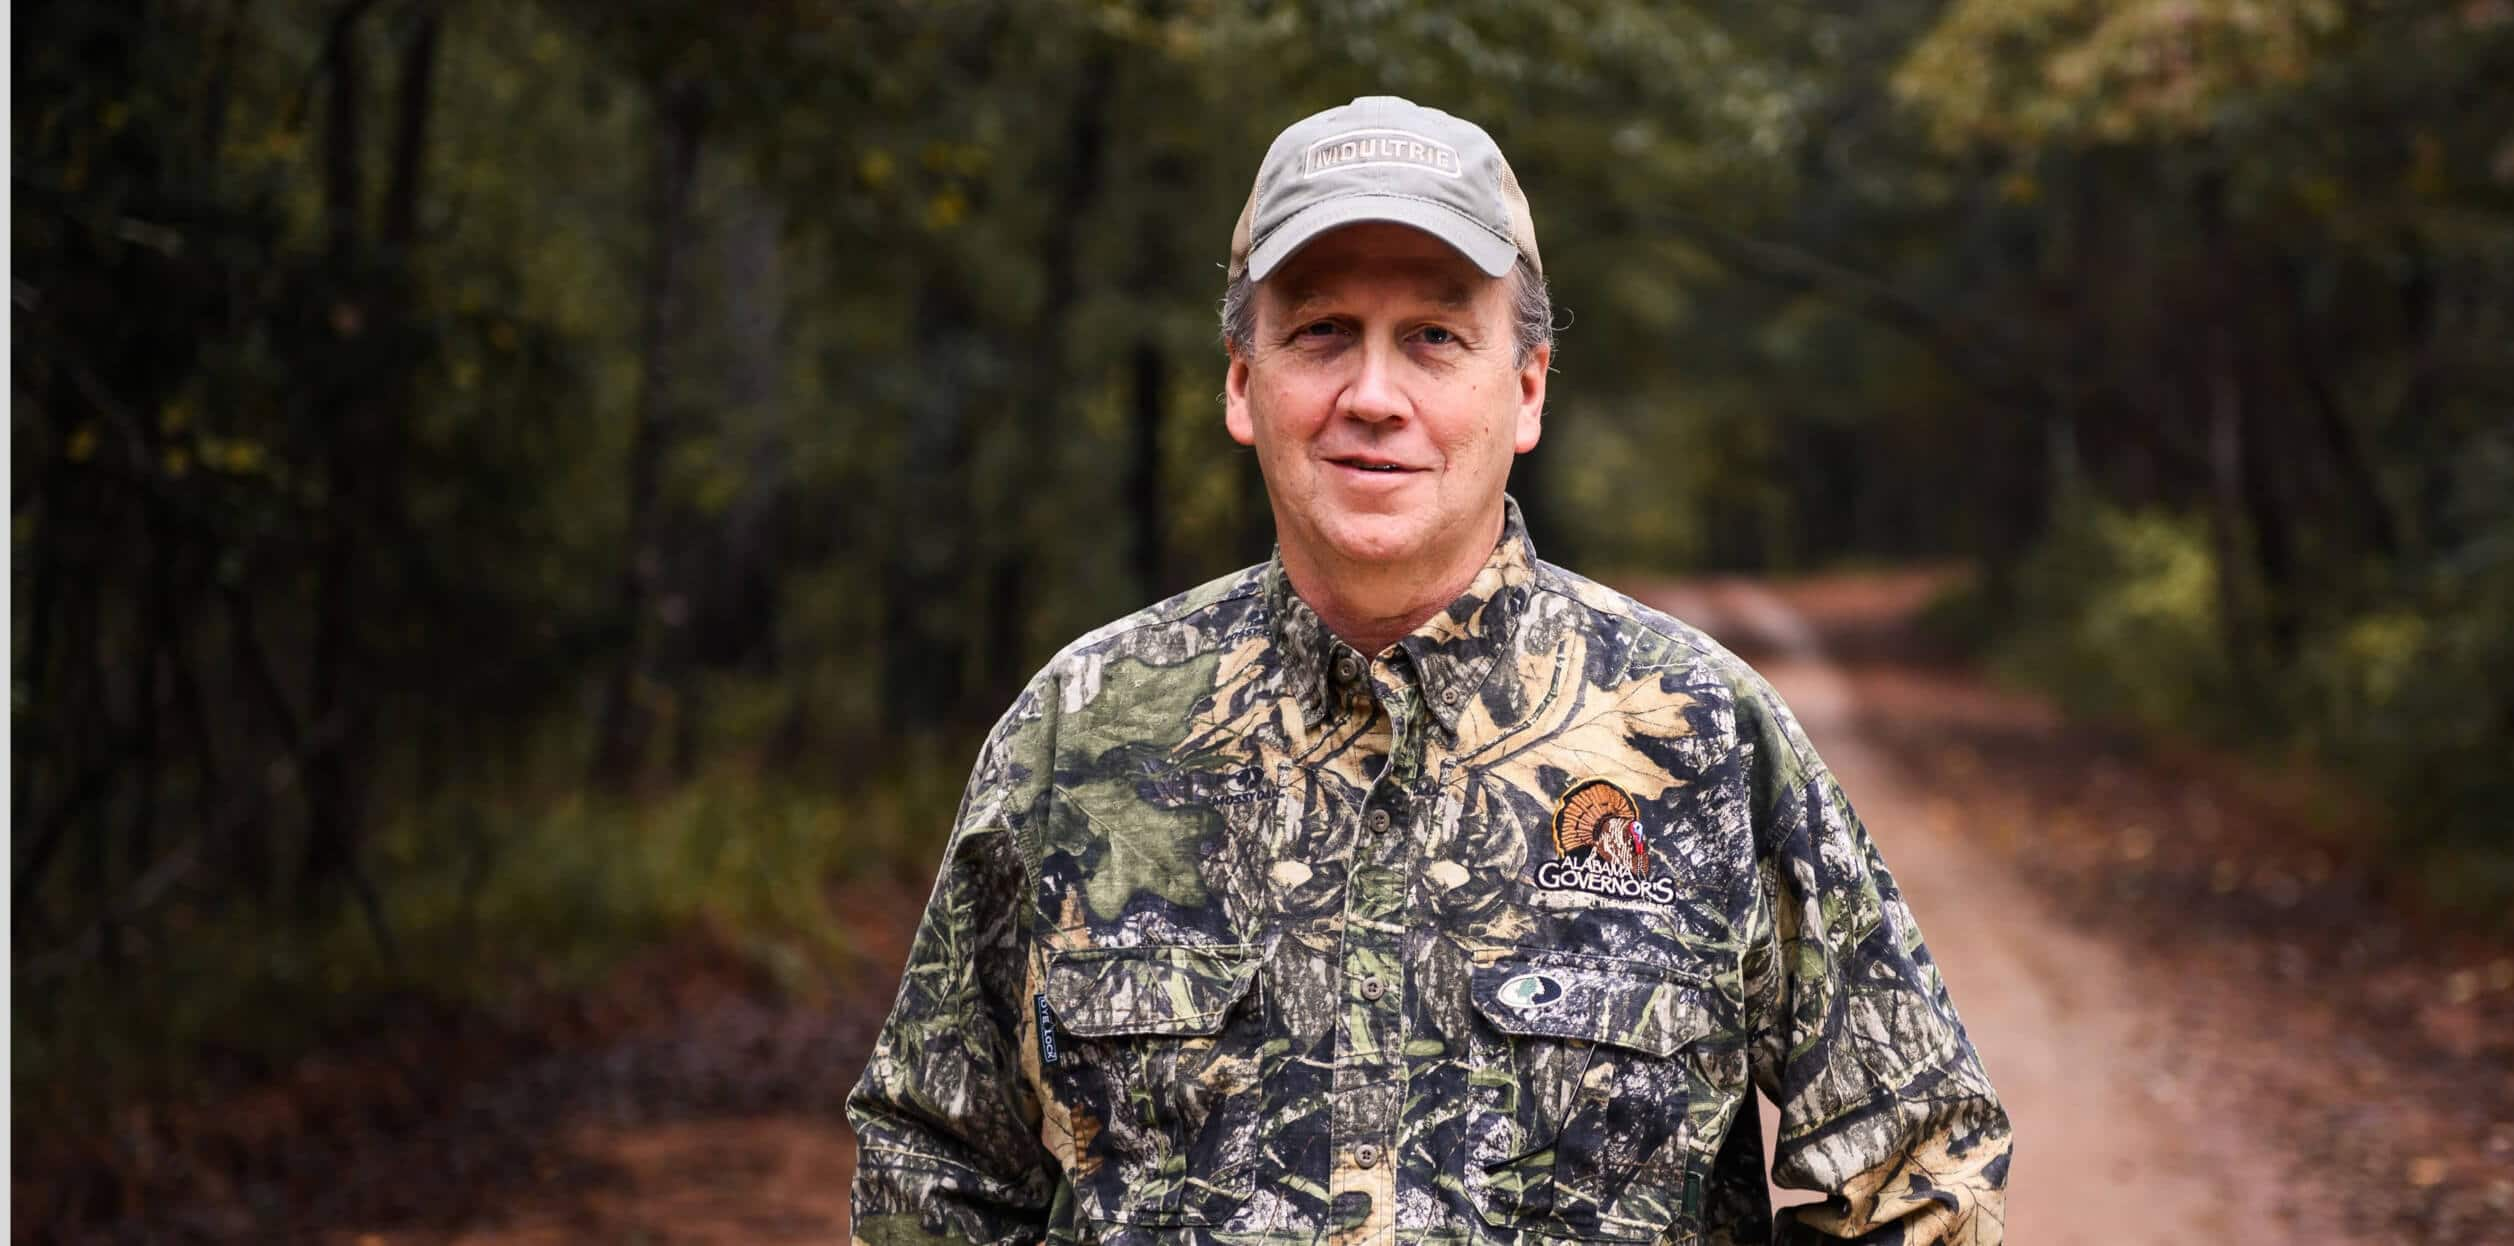 Man dressed in camo standing on a trail in the woods